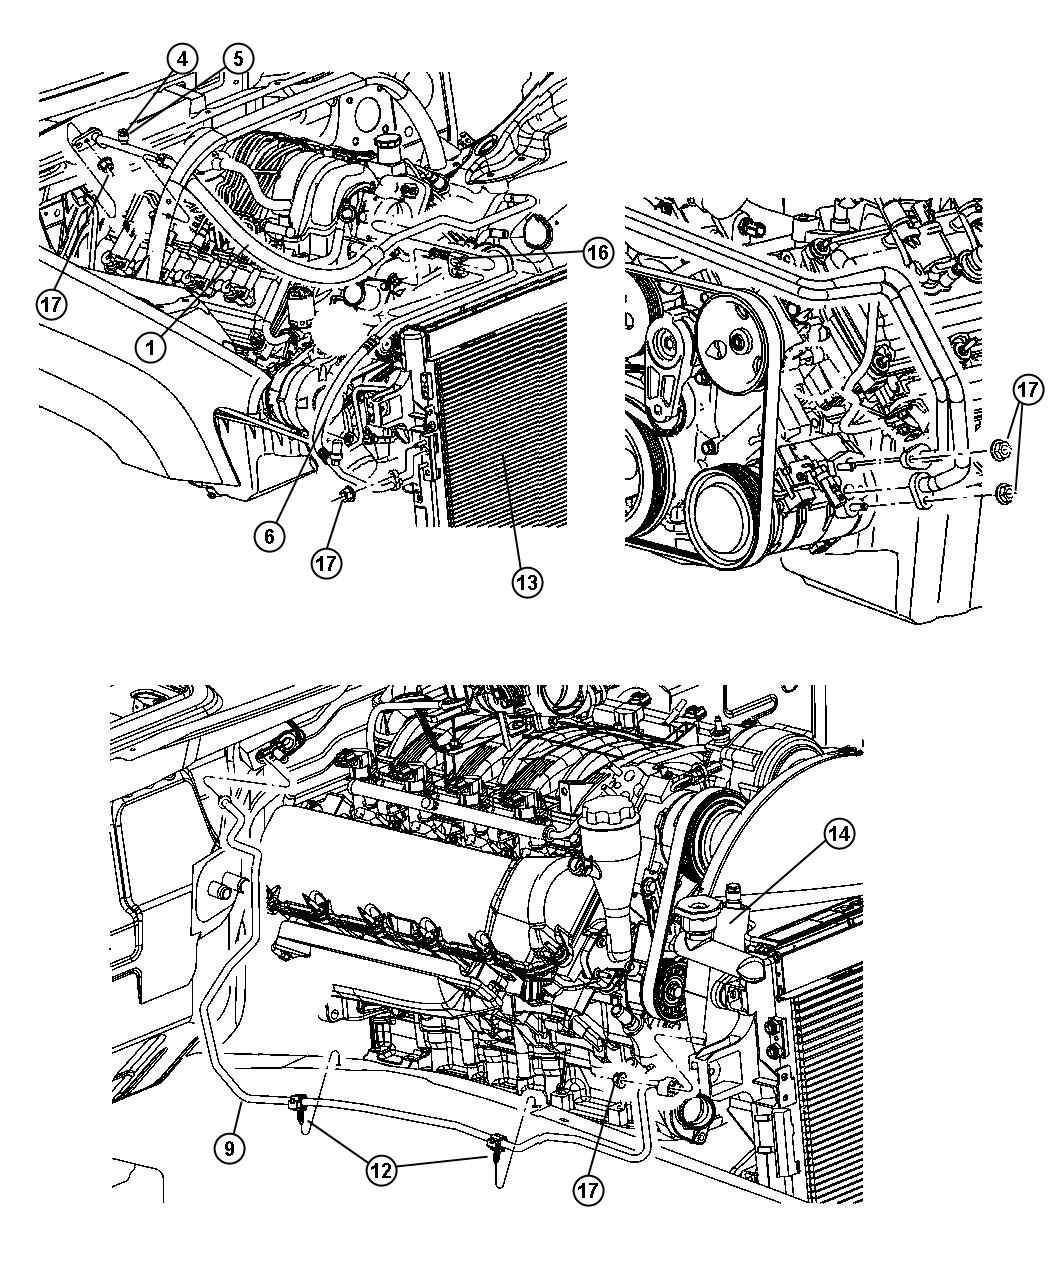 Jeep Grand Cherokee Line. A/c discharge. Without rear a/c